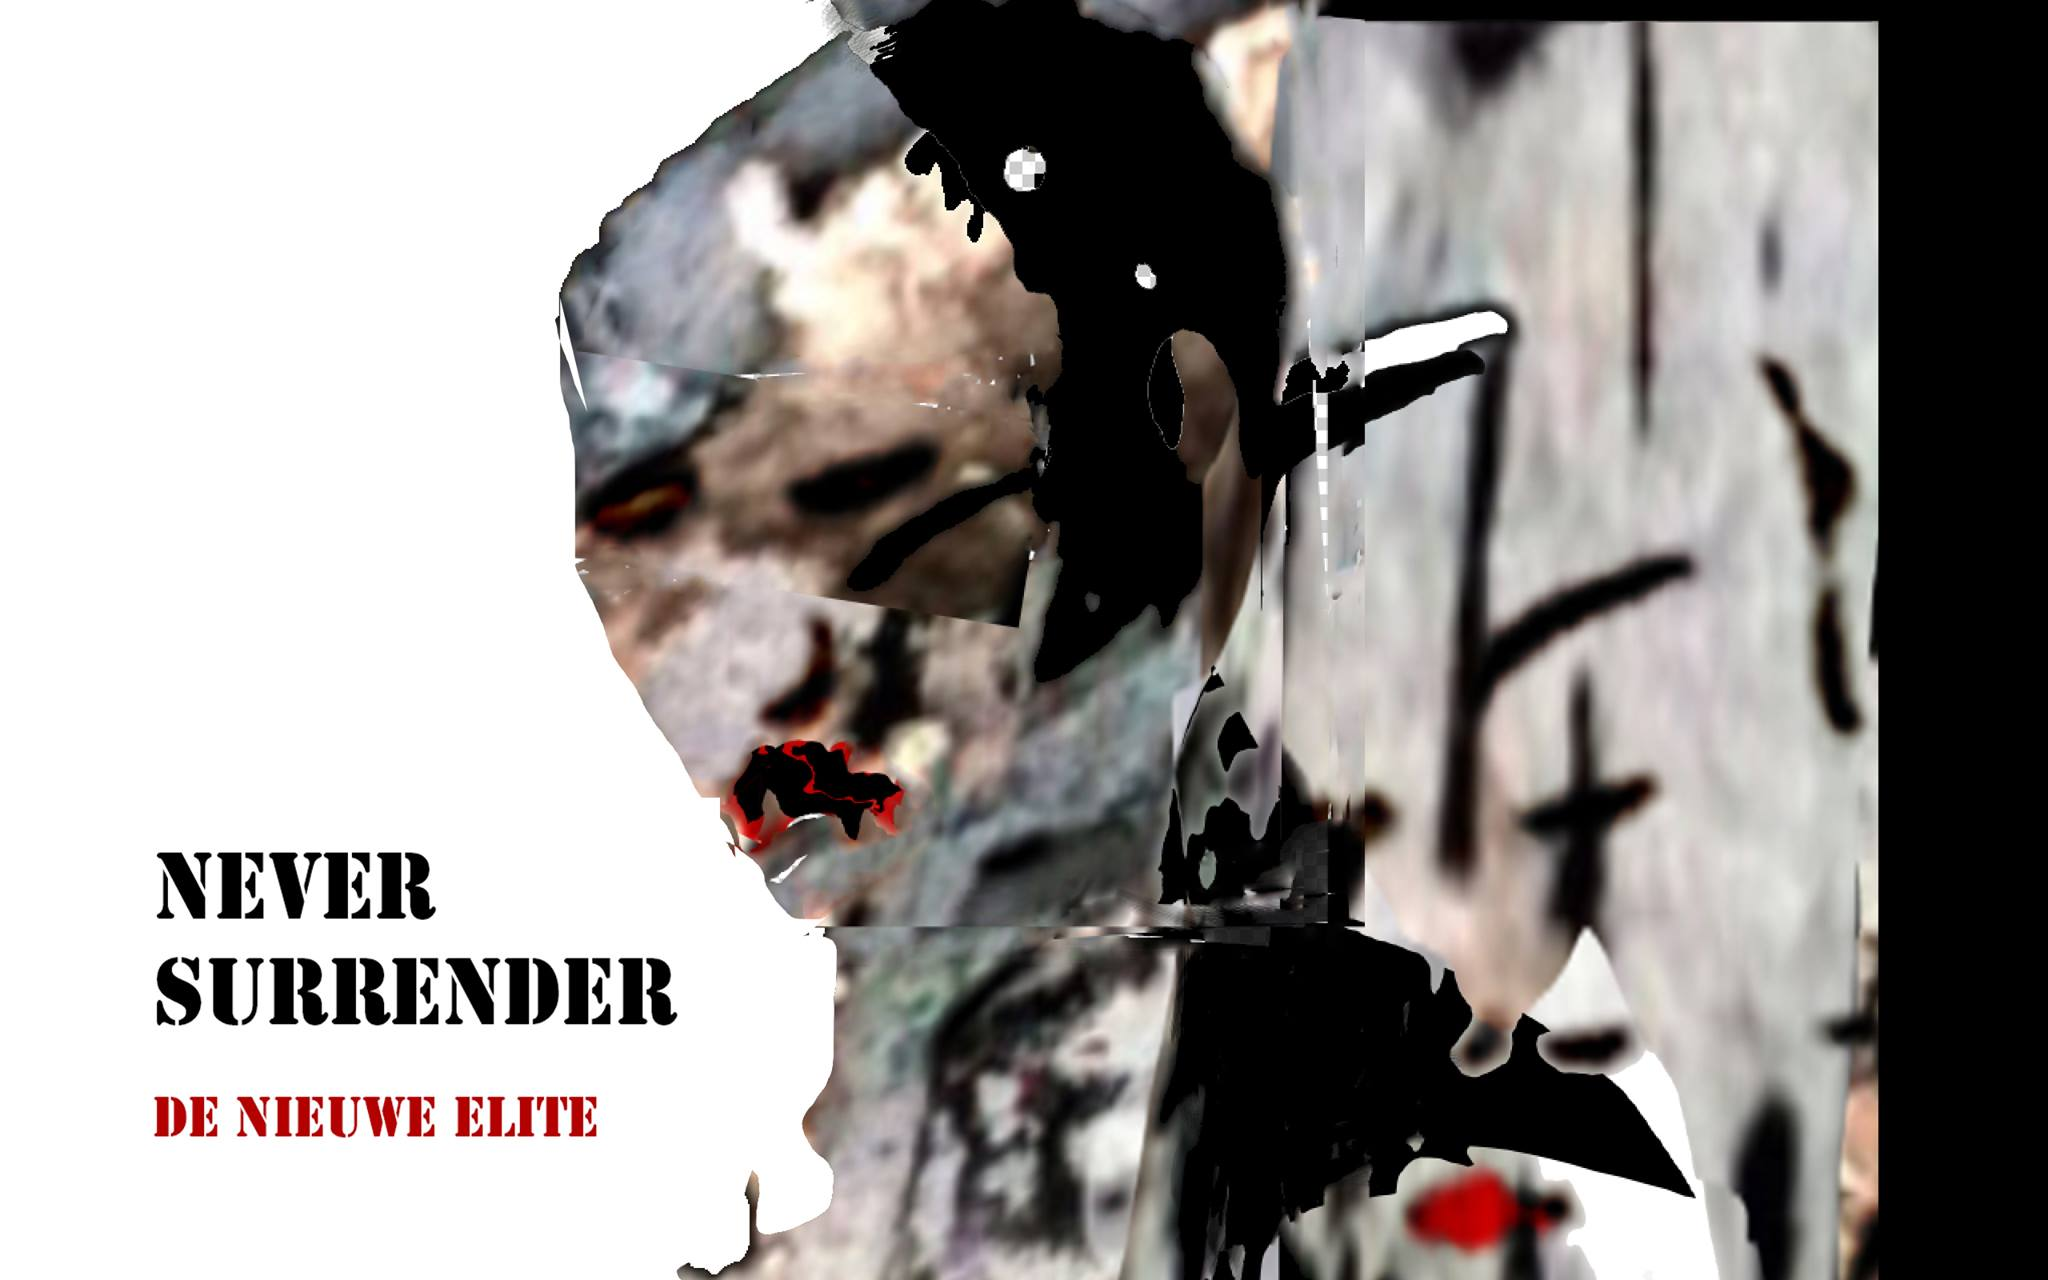 Agam Andreas - Never surrender